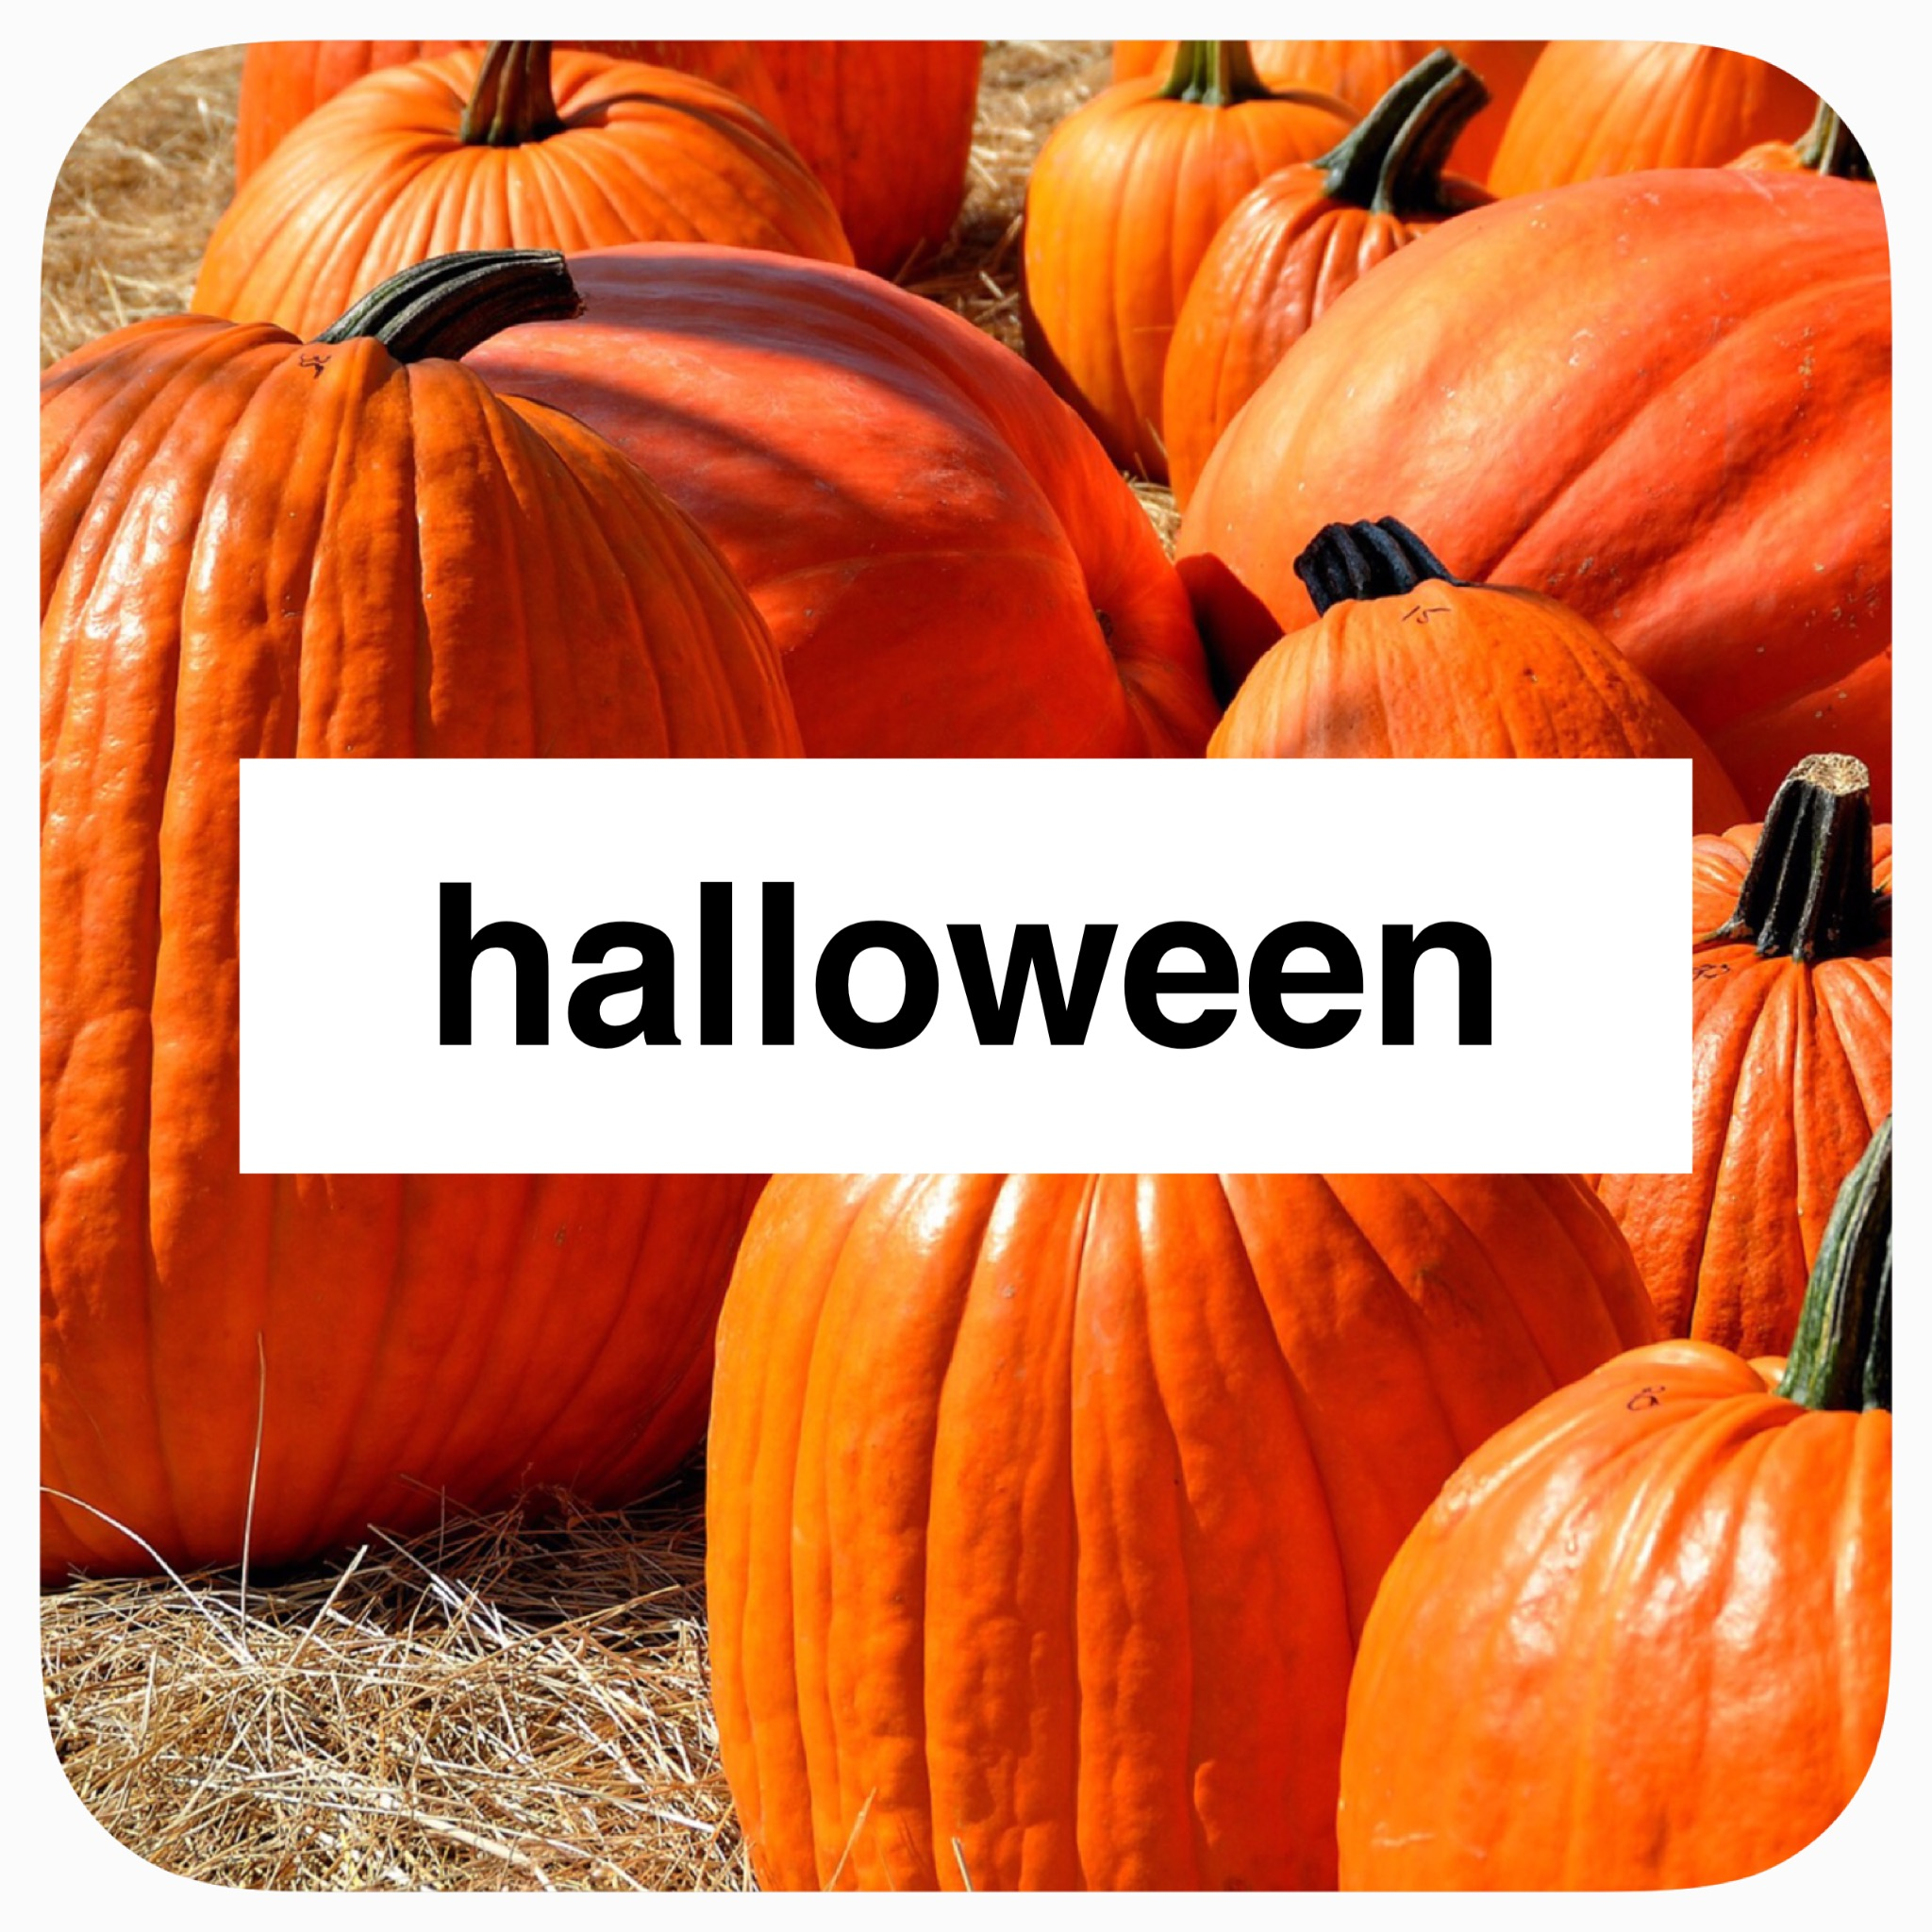 Halloween/ Fall related activity and projects for you and your little one.